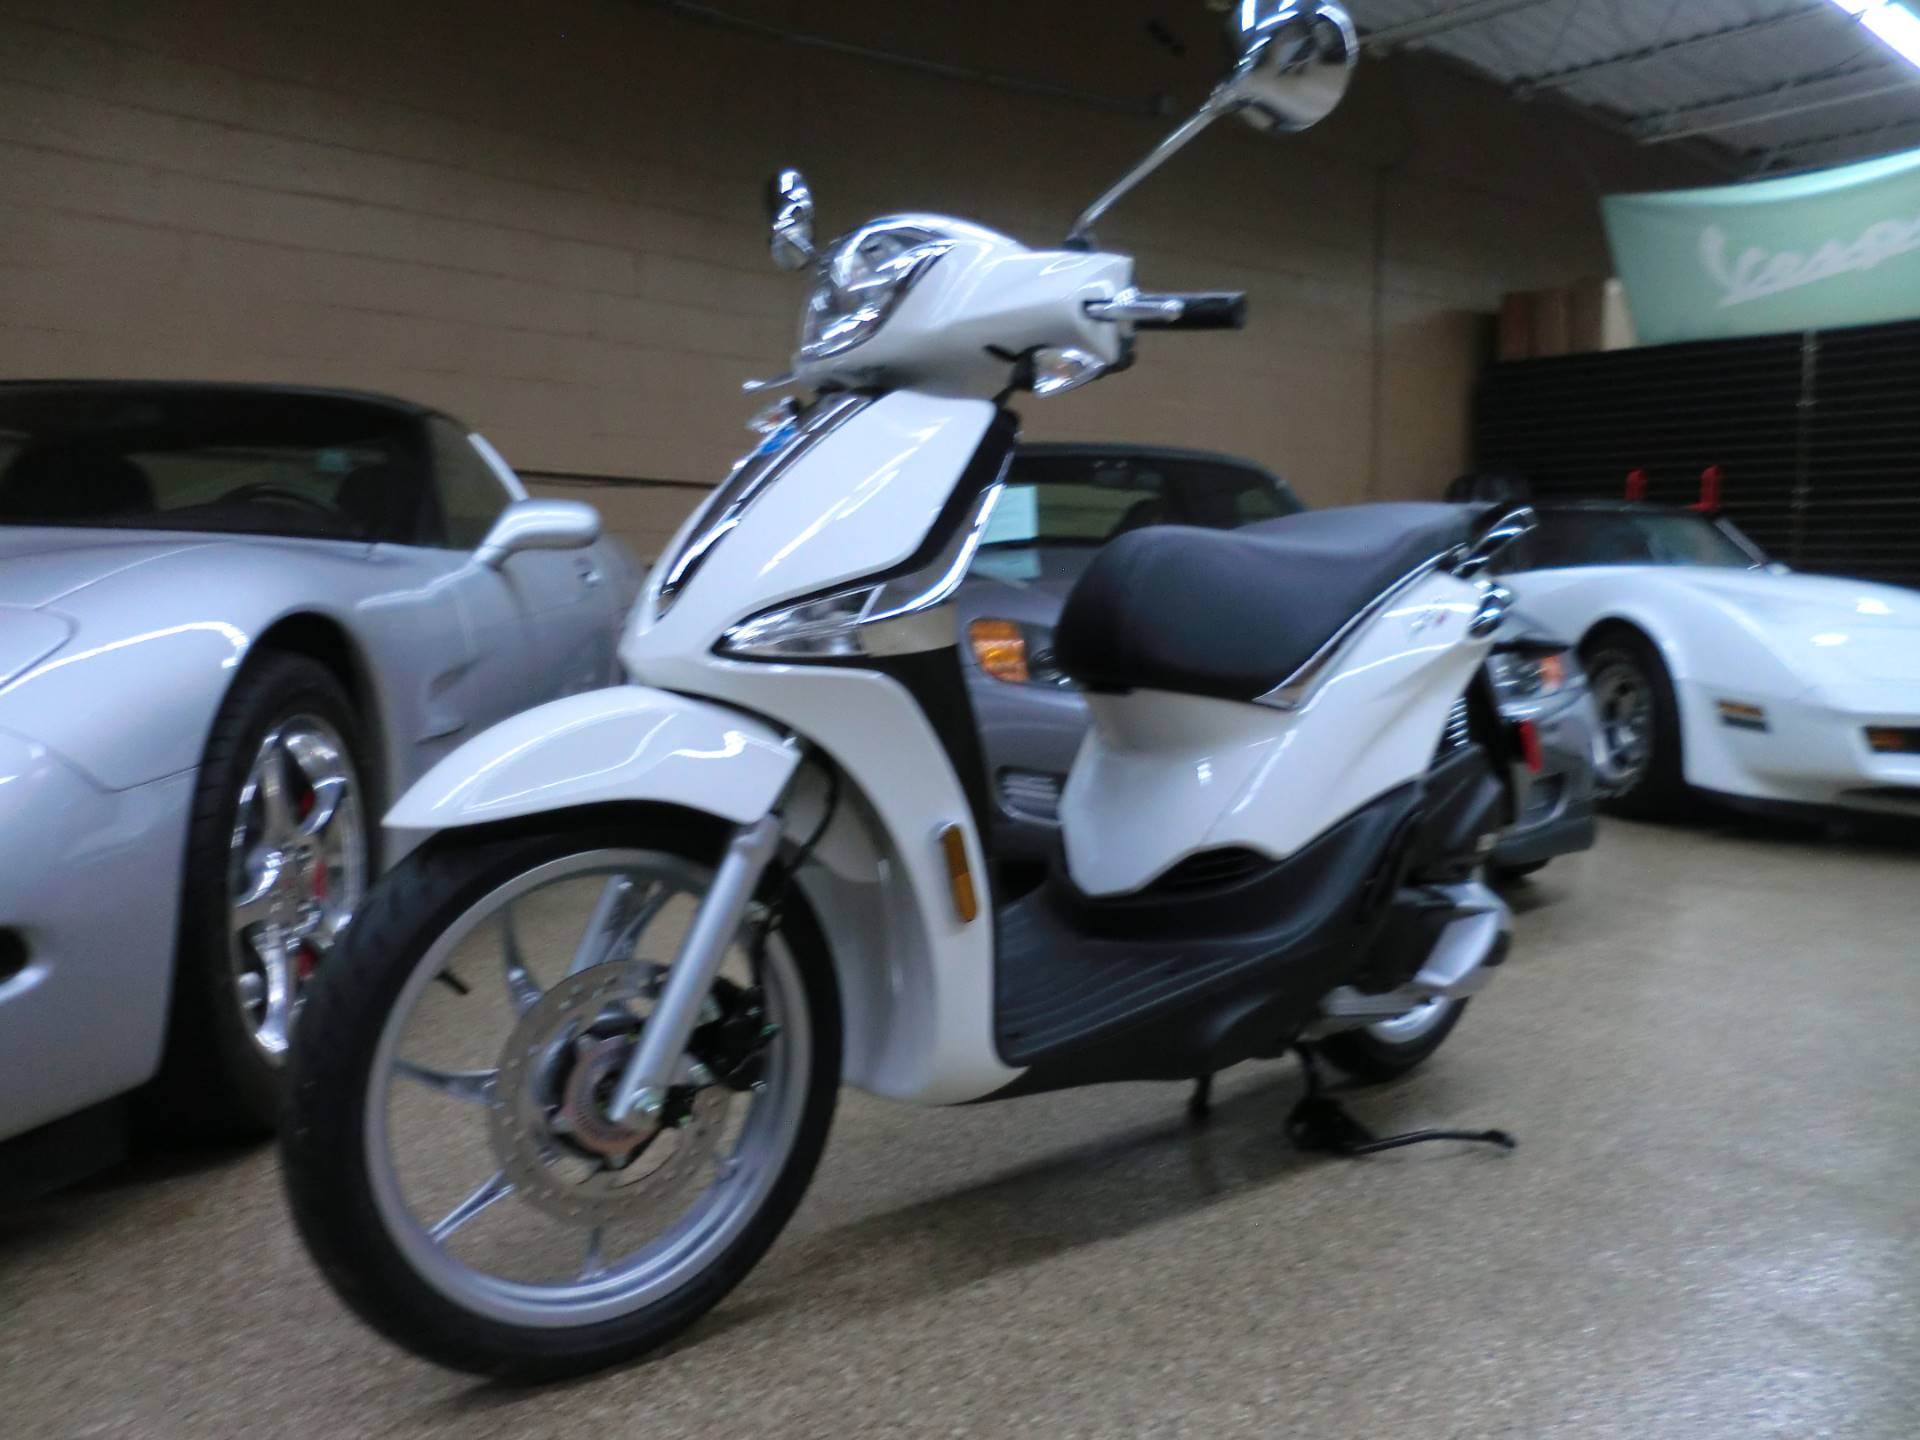 2021 Piaggio Liberty 150 in Downers Grove, Illinois - Photo 3